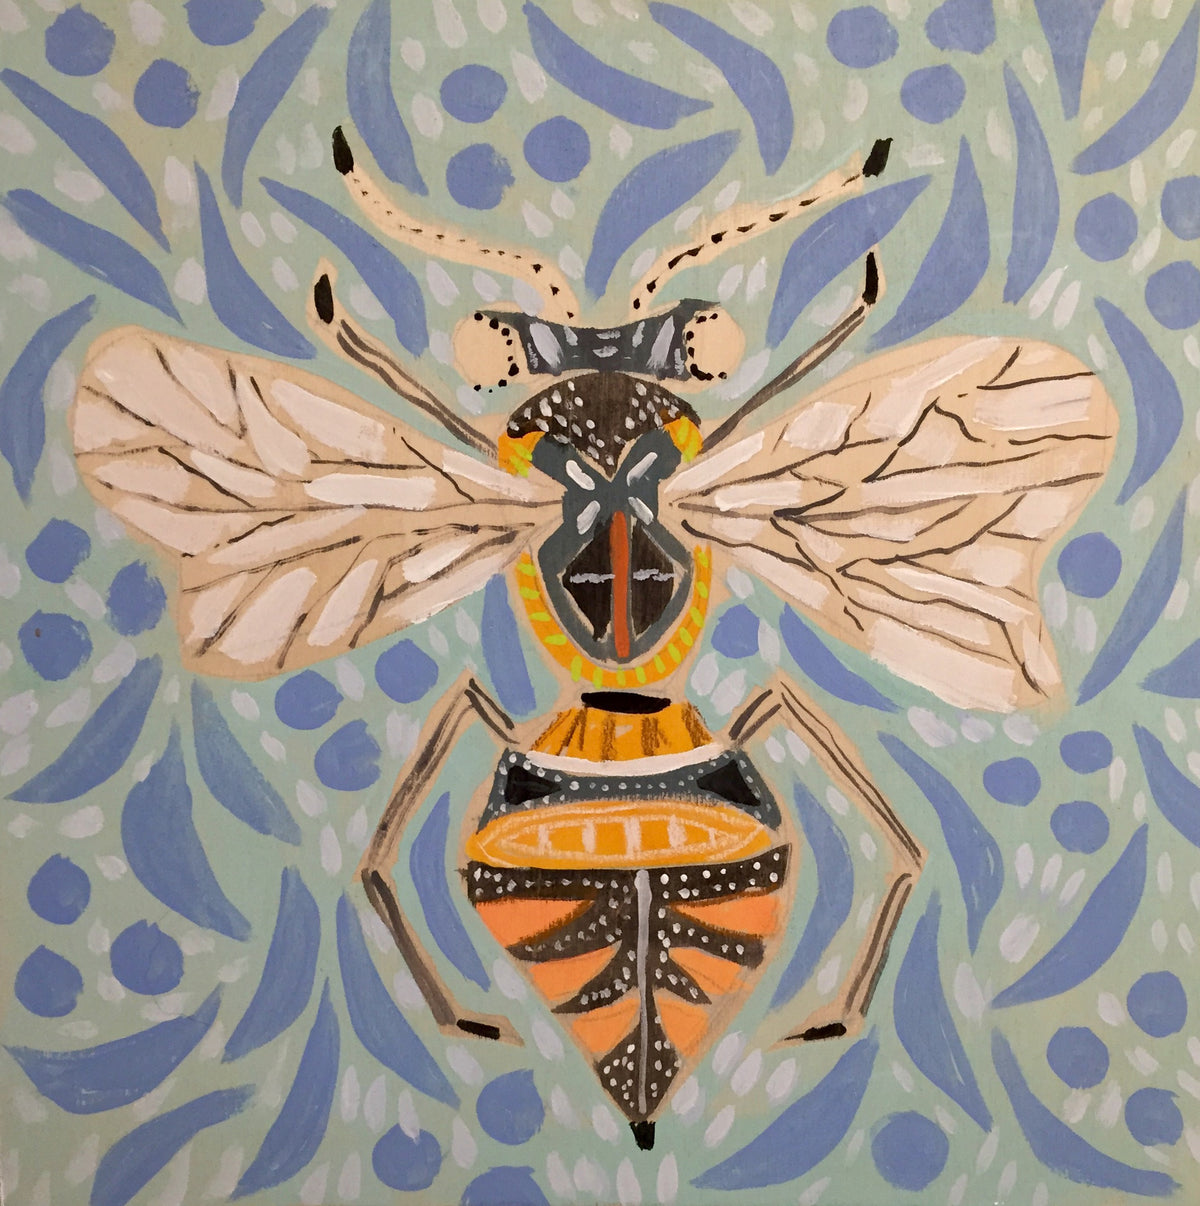 14X14 - BORIS THE BEE